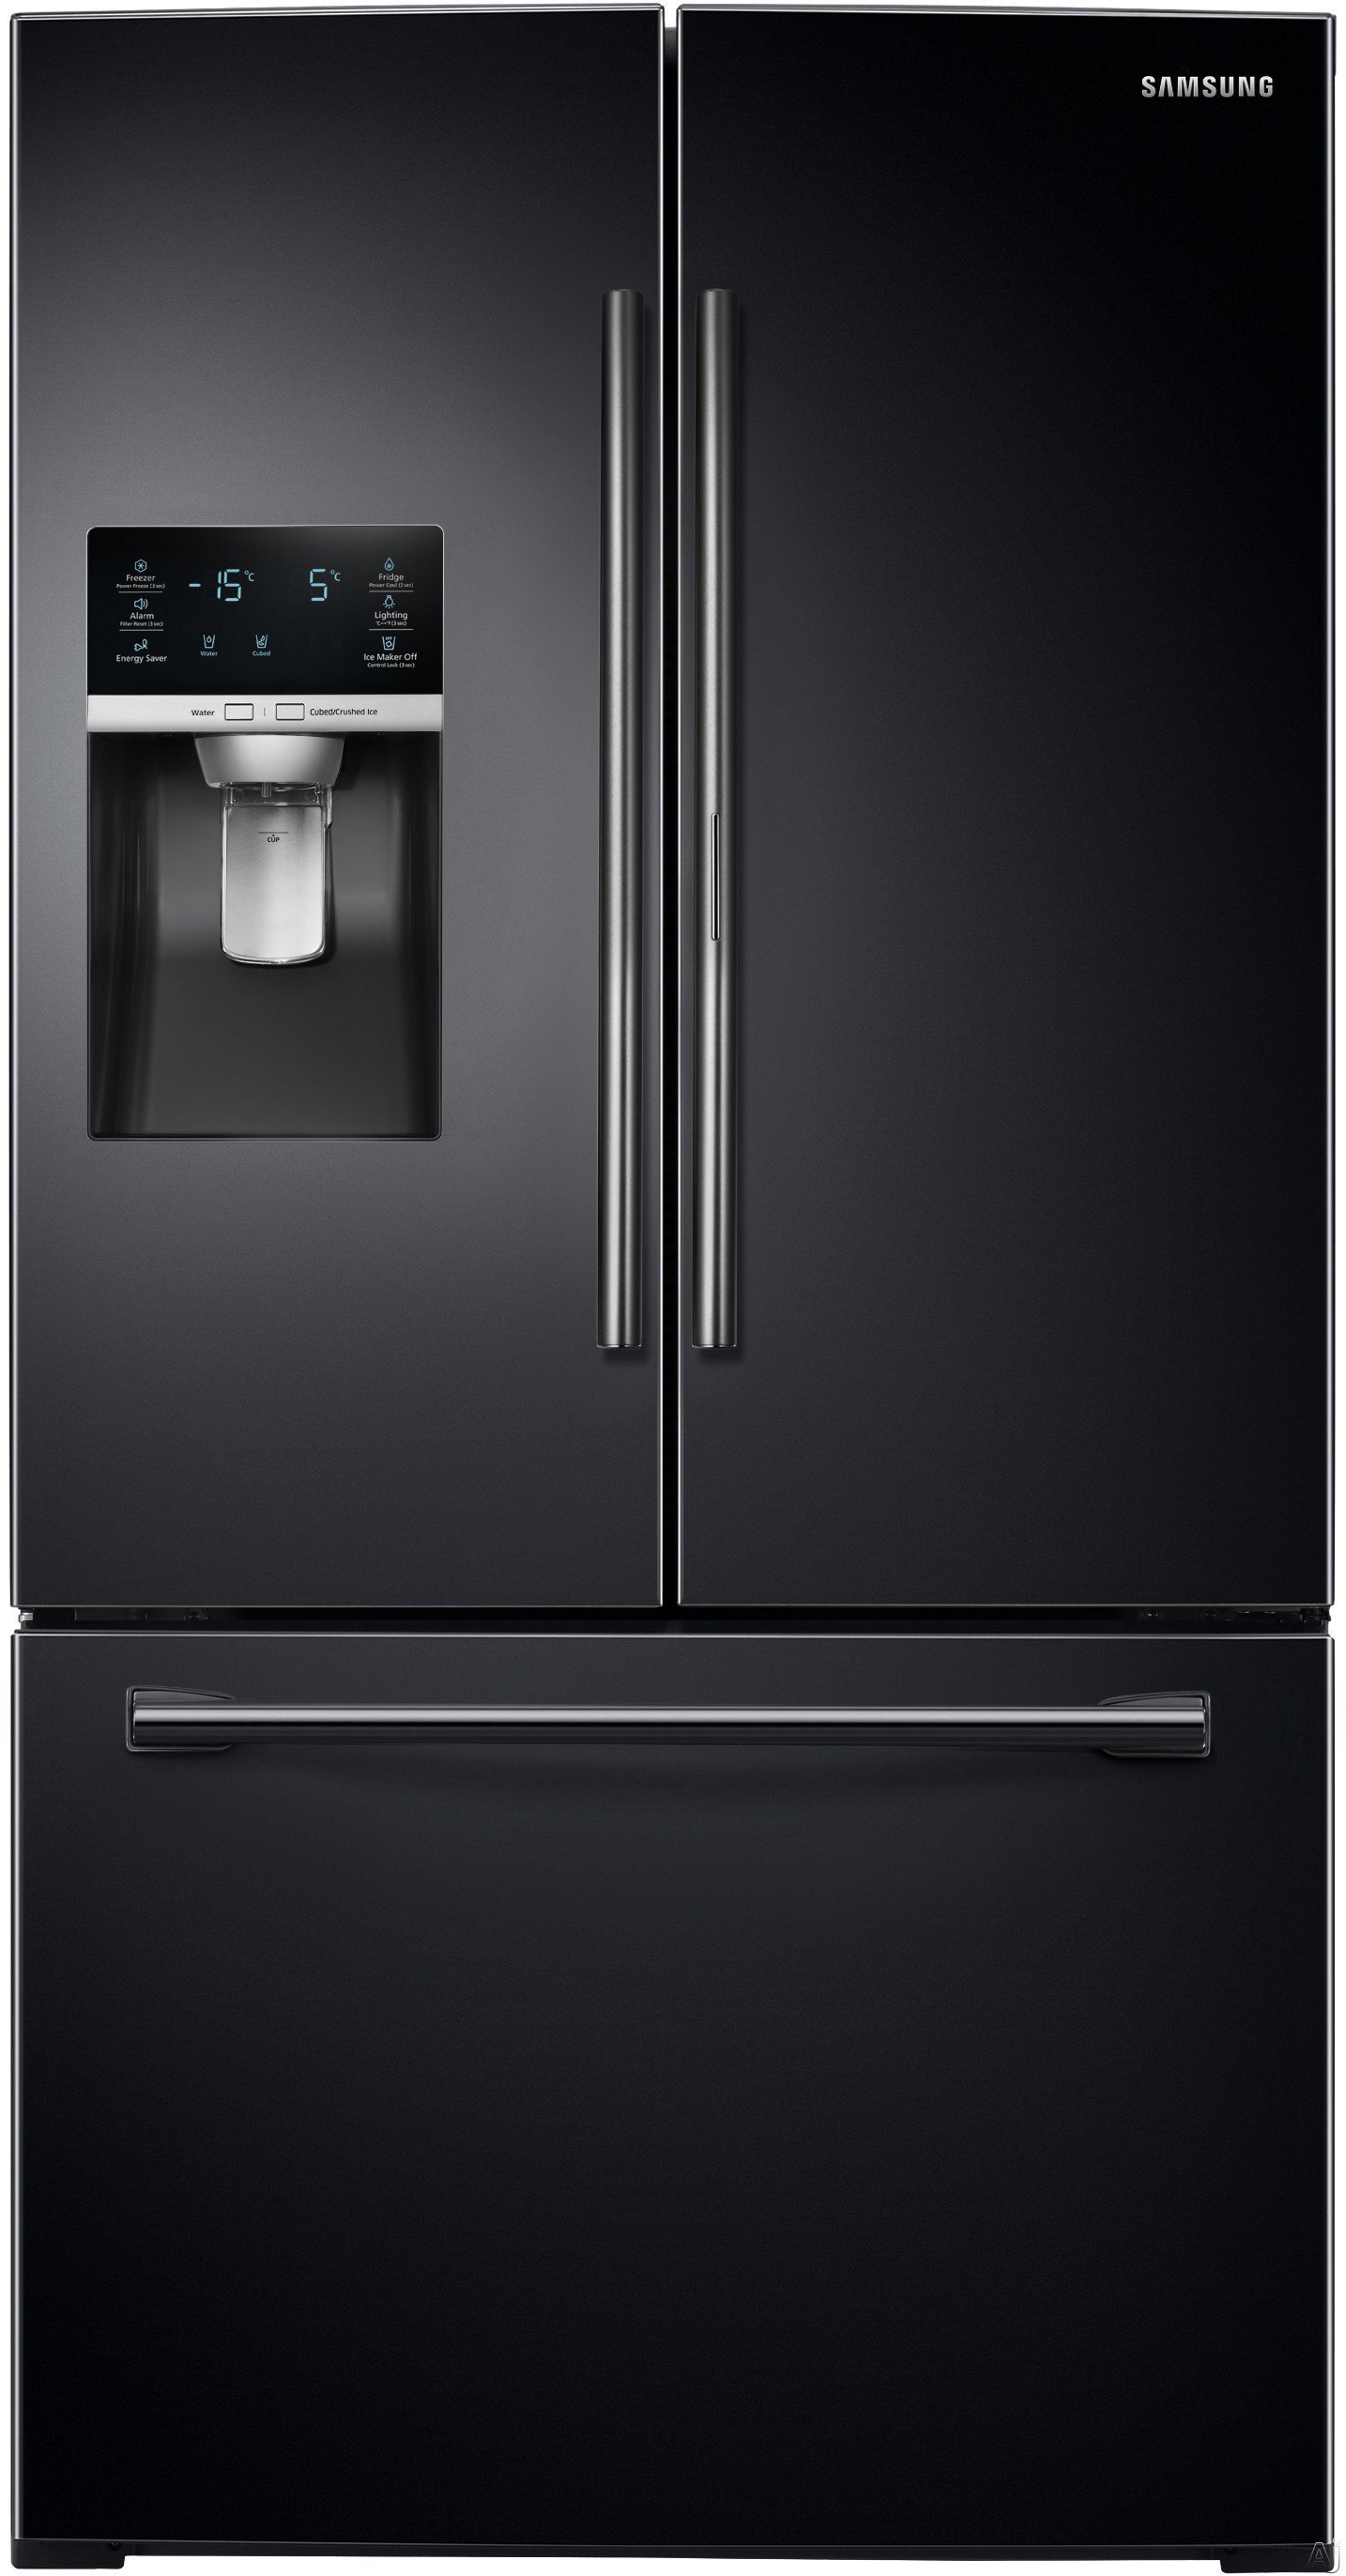 Samsung RF28HDEDPBC 27.8 cu. ft. French Door Refrigerator with 5 Spillproof Glass Shelves, Food ShowCase Fridge Door, Metal Cooling, External Ice/Water Dispenser, CoolSelect Pantry and Humidity Controlled Crispers: Black